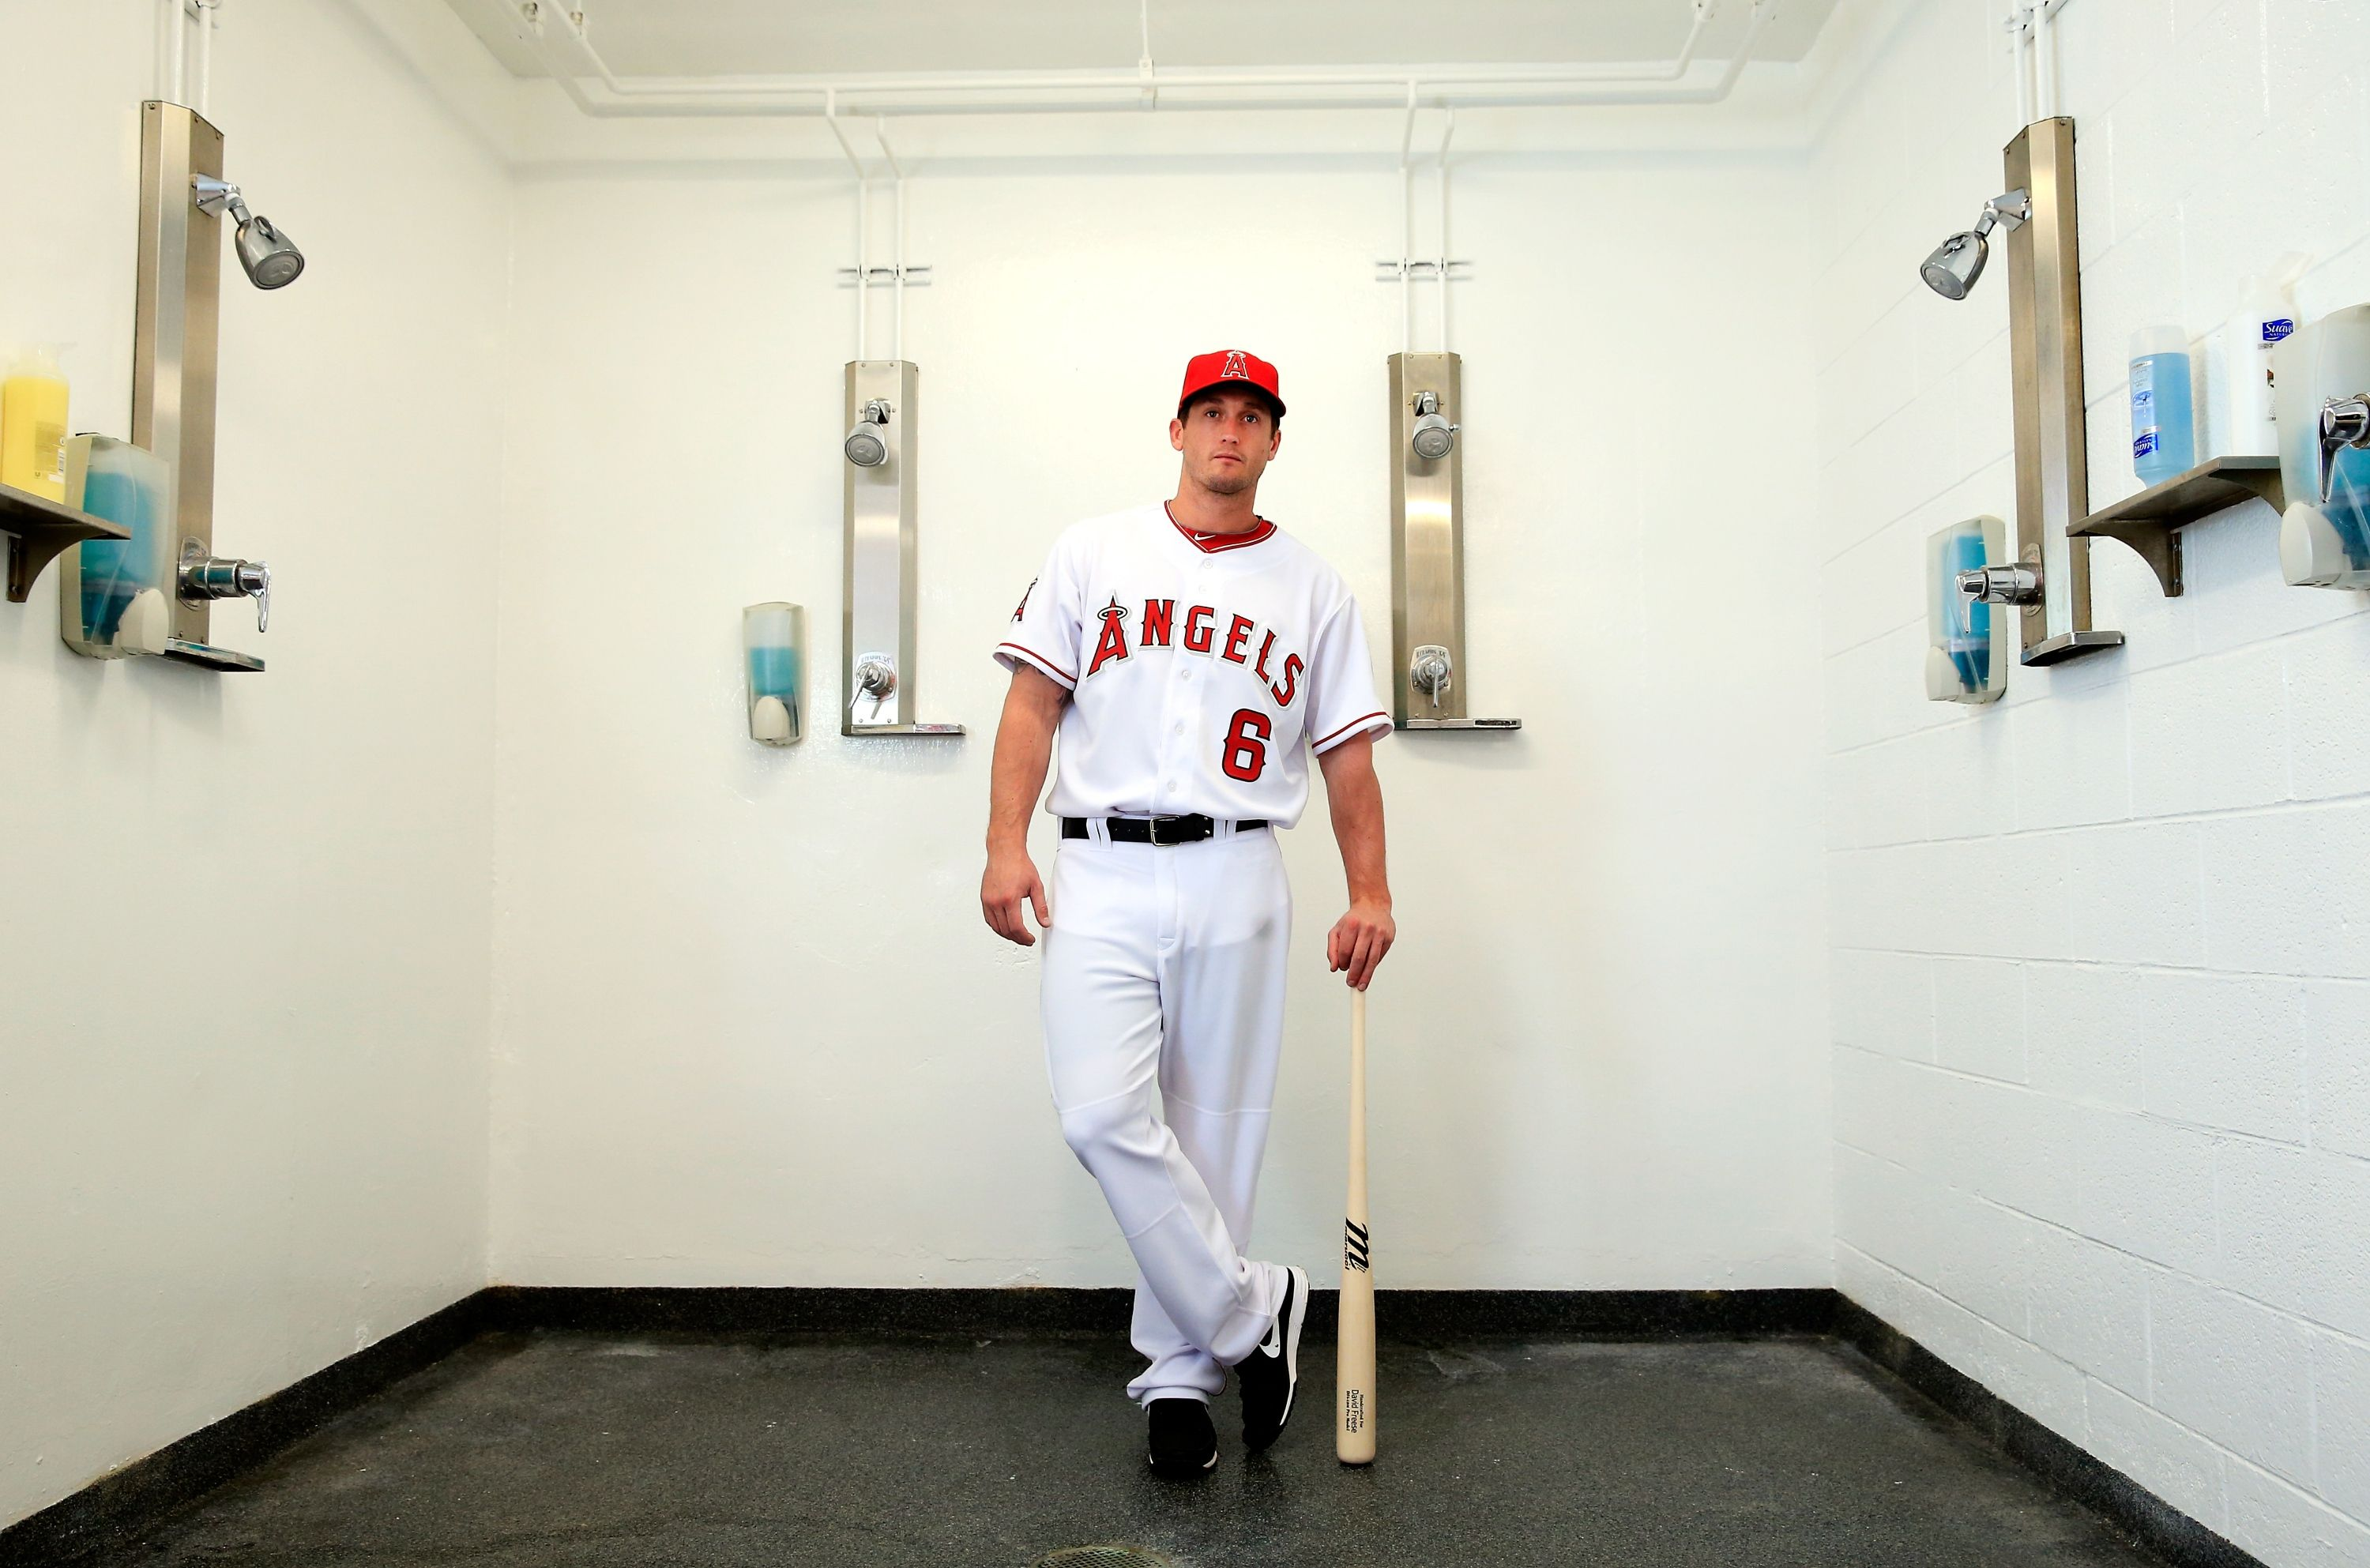 Tempe Az February 26 David Freese 6 Poses During Los Angeles Angels Photo Day On February 26 2014 In Tempe Arizona Los Angeles Angels Sport Man Photo